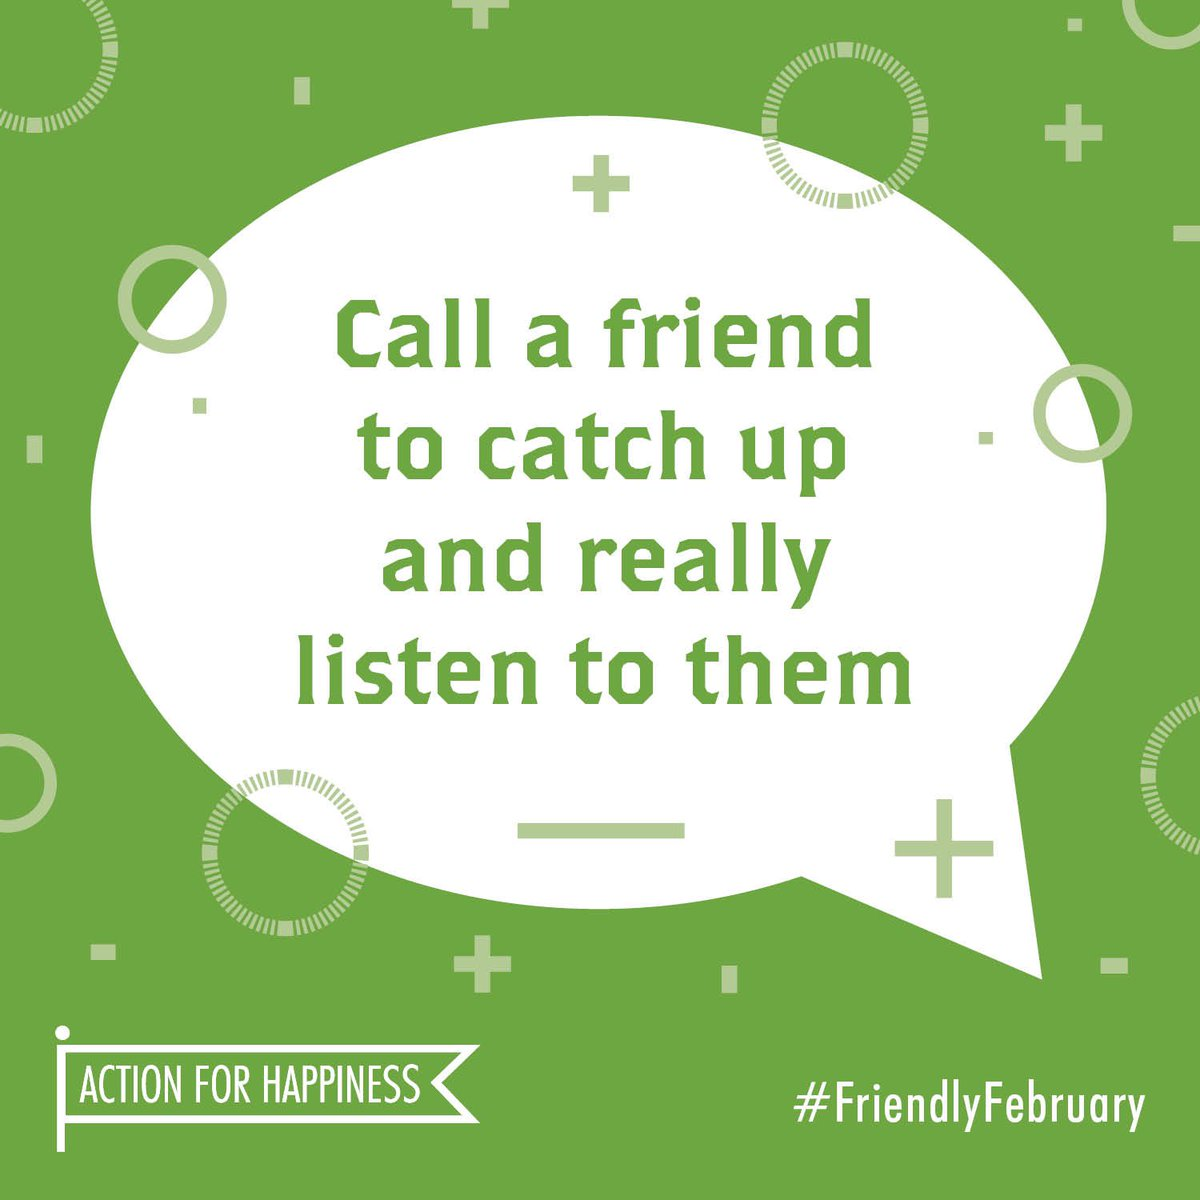 Friendly February - Day 27: Call a friend to catch up and really listen to them actionforhappiness.org/february #FriendlyFebruary